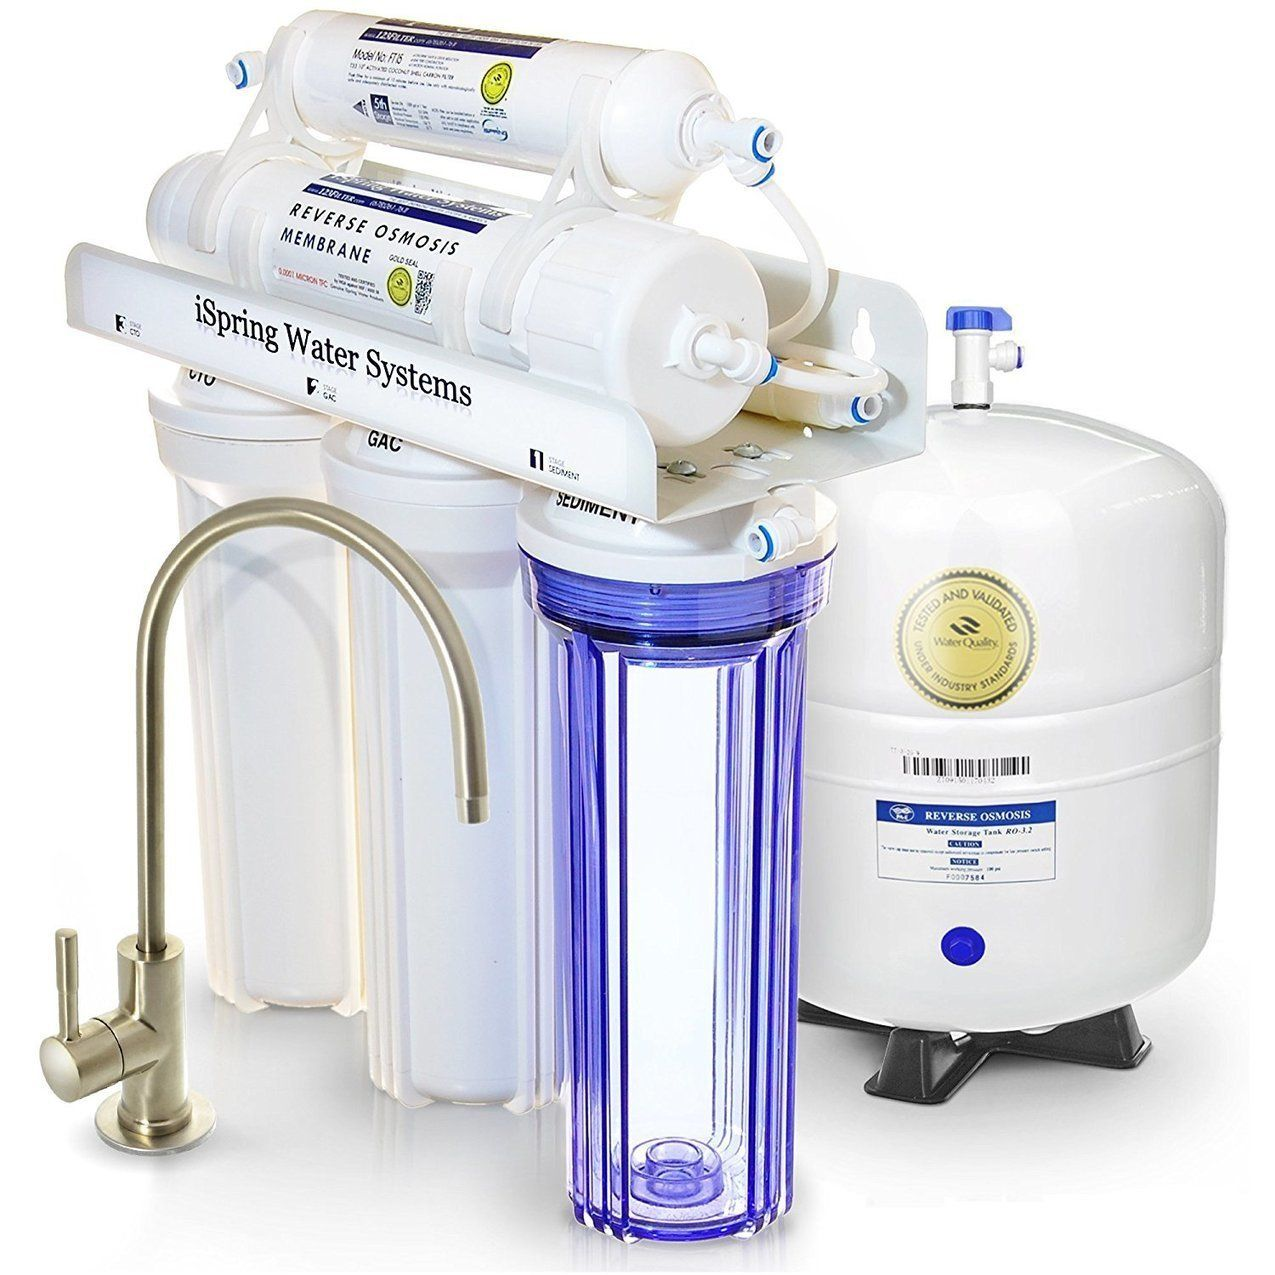 Ispring Rcc7 Under Sink Ro Water Filtration System Review Countertop Water Filter Water Filtration System Best Reverse Osmosis System